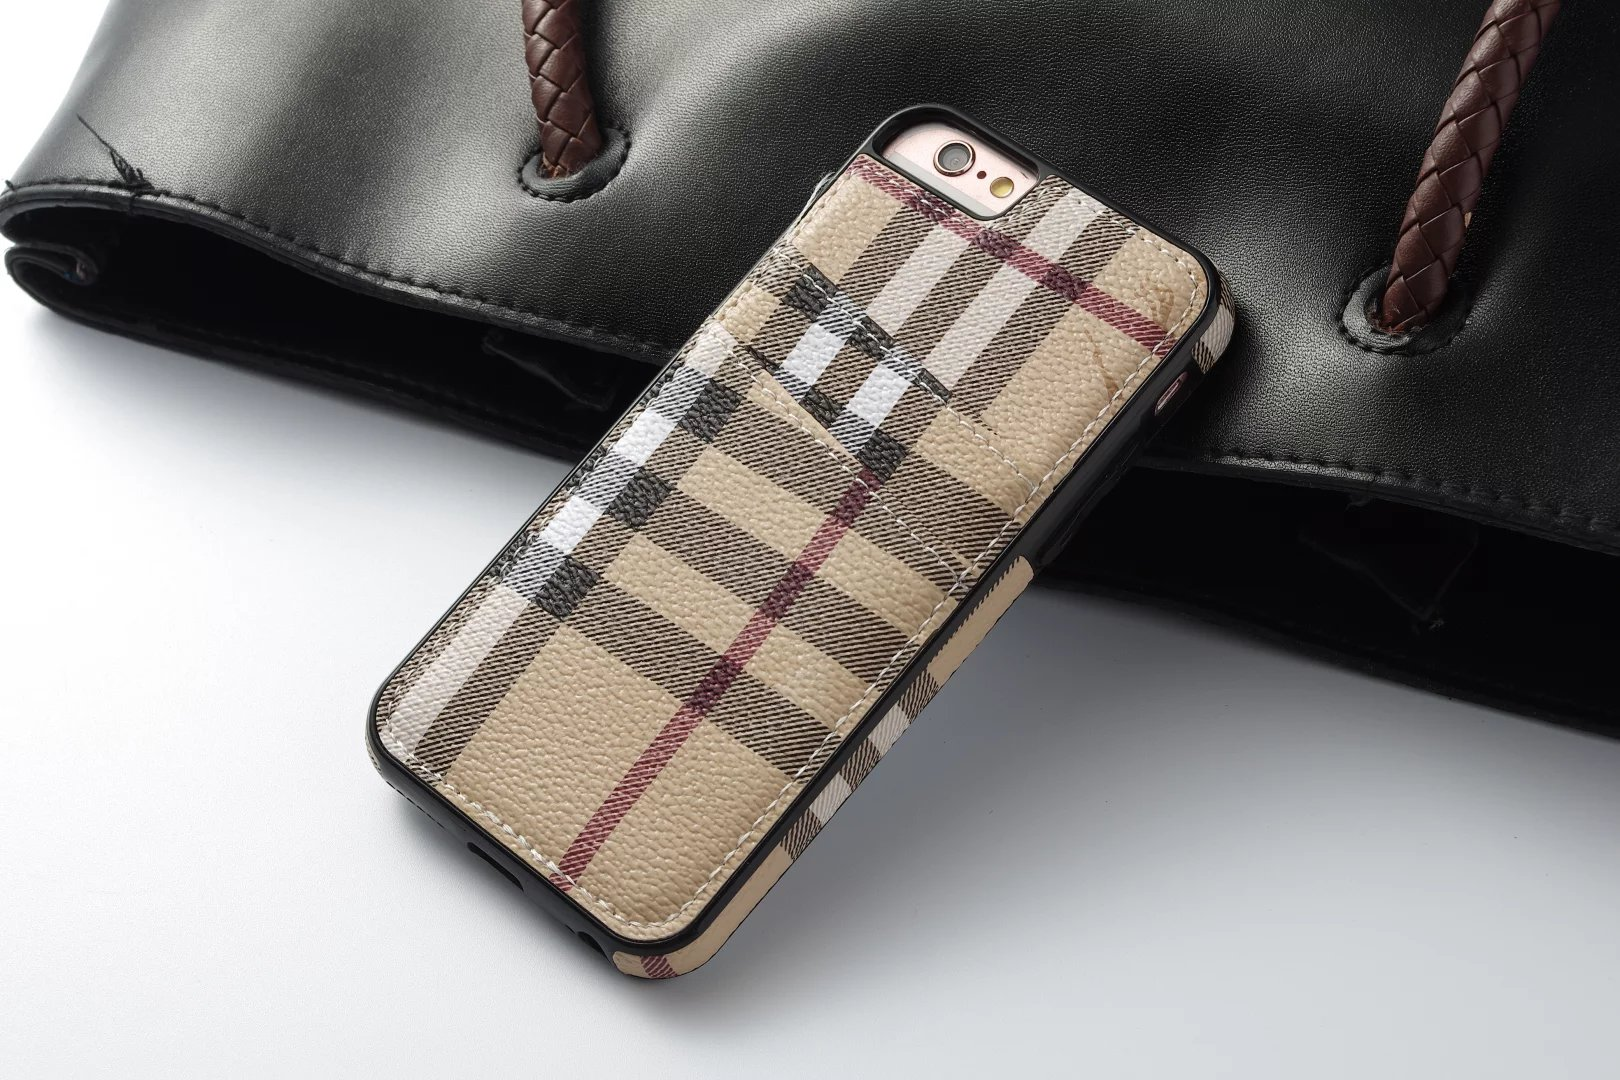 cover iphone 8 make iphone 8 case Burberry iphone 8 case iphone cases for 6 buy iphone 8 cases online cell phone covers online how to charge mophie case iphone 8 cover case iphone 8 plus case brand